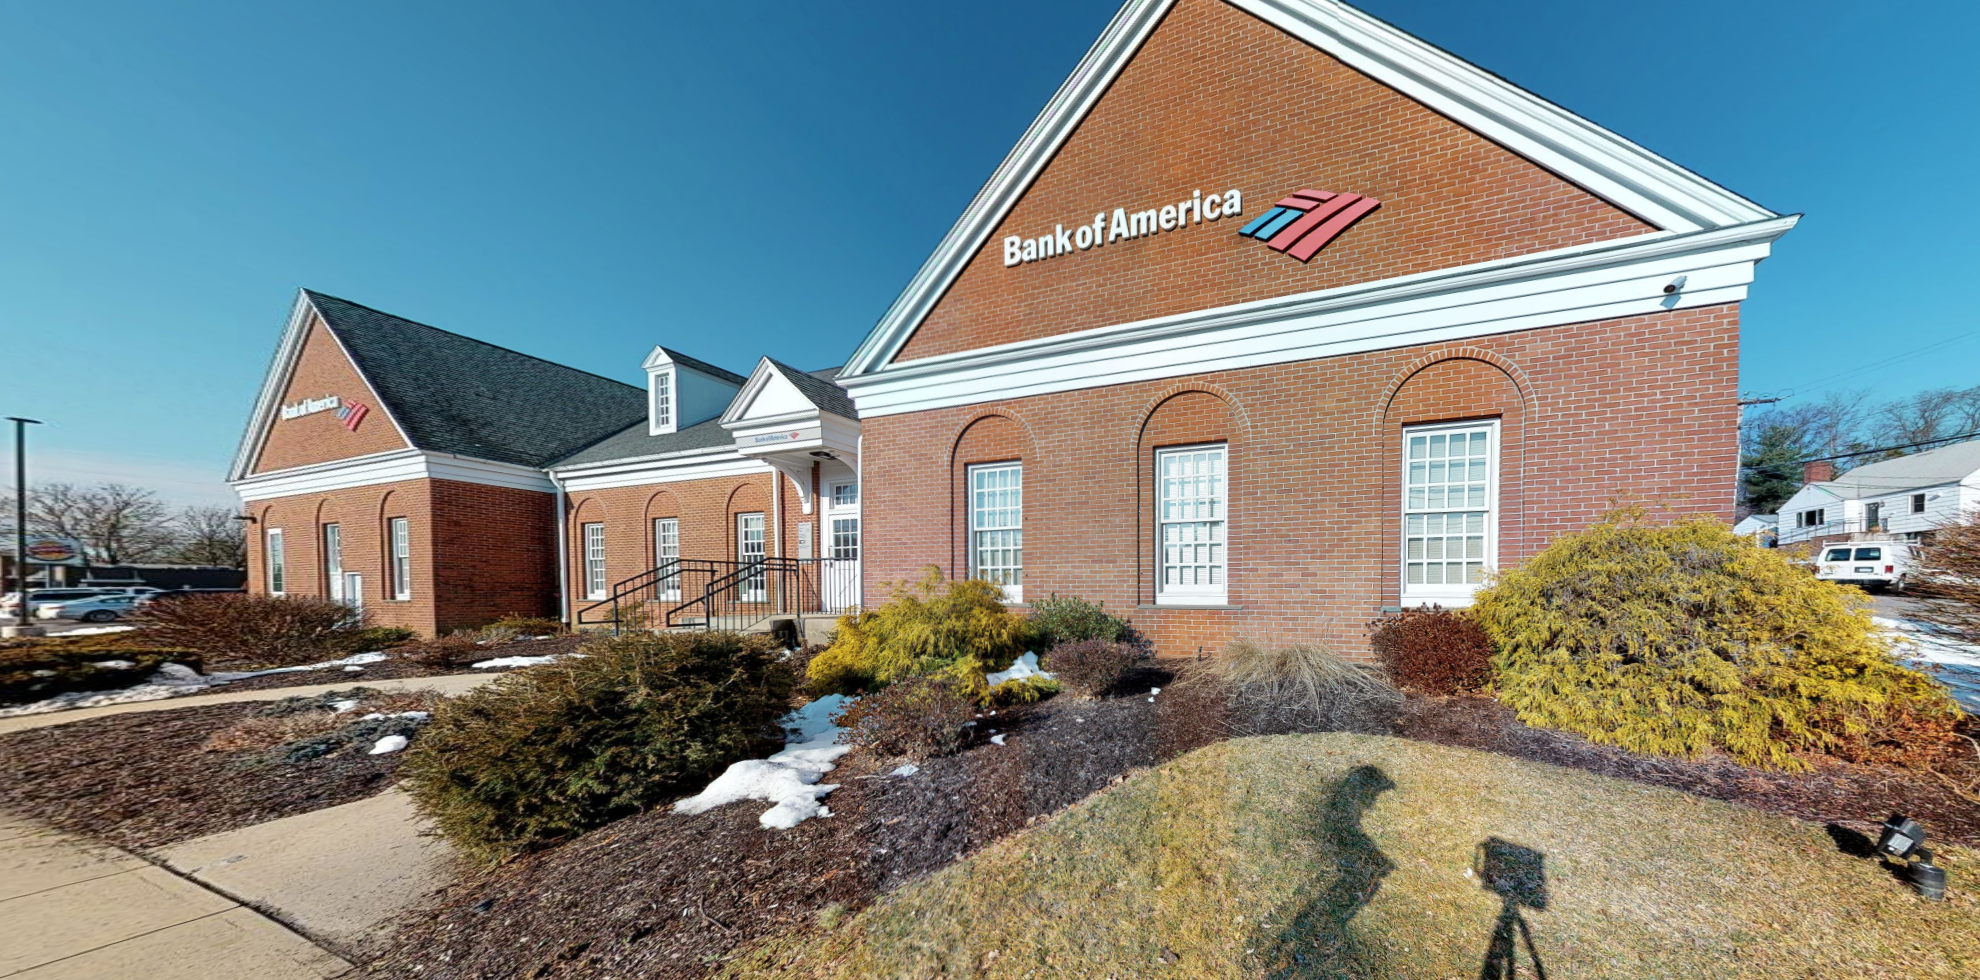 Bank of America financial center with drive-thru ATM | 1070 High Ridge Rd, Stamford, CT 06905